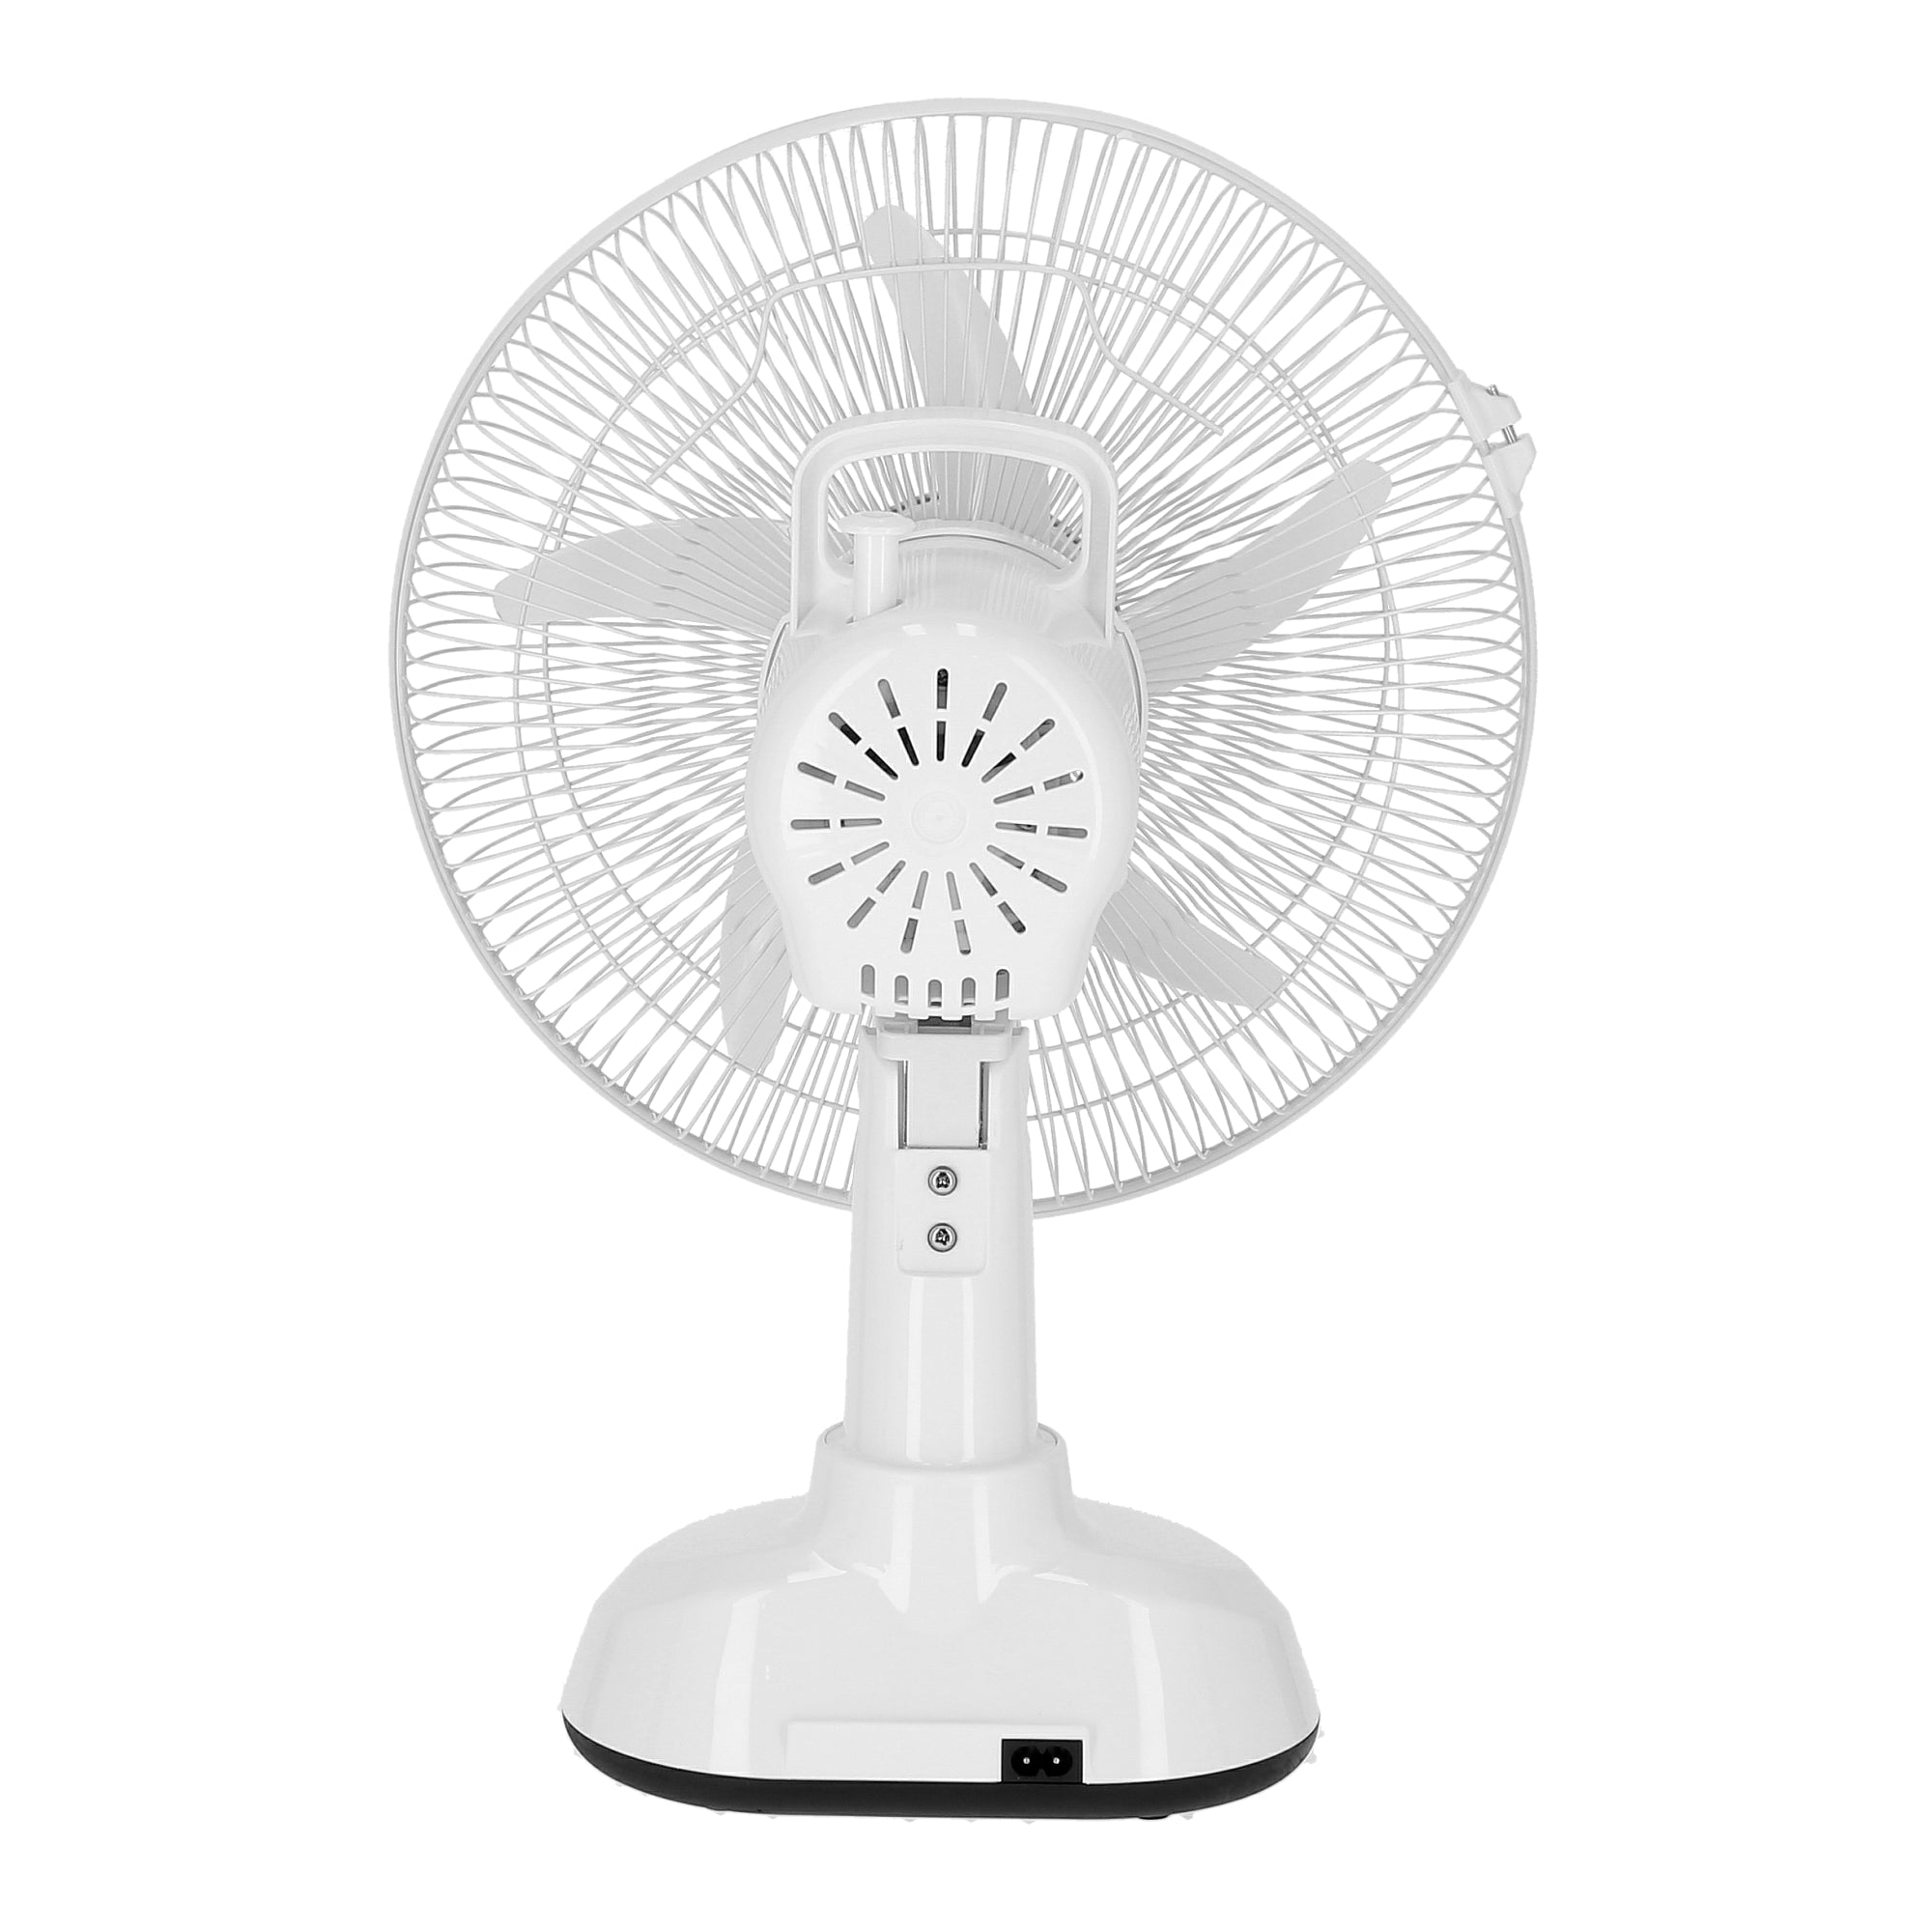 12-Inch Table Fan with LED - 2 Speed Settings with Oscillating/Rotating and Static Feature - Electric Portable Desktop Cooling Fan for Desk Home or Office Use